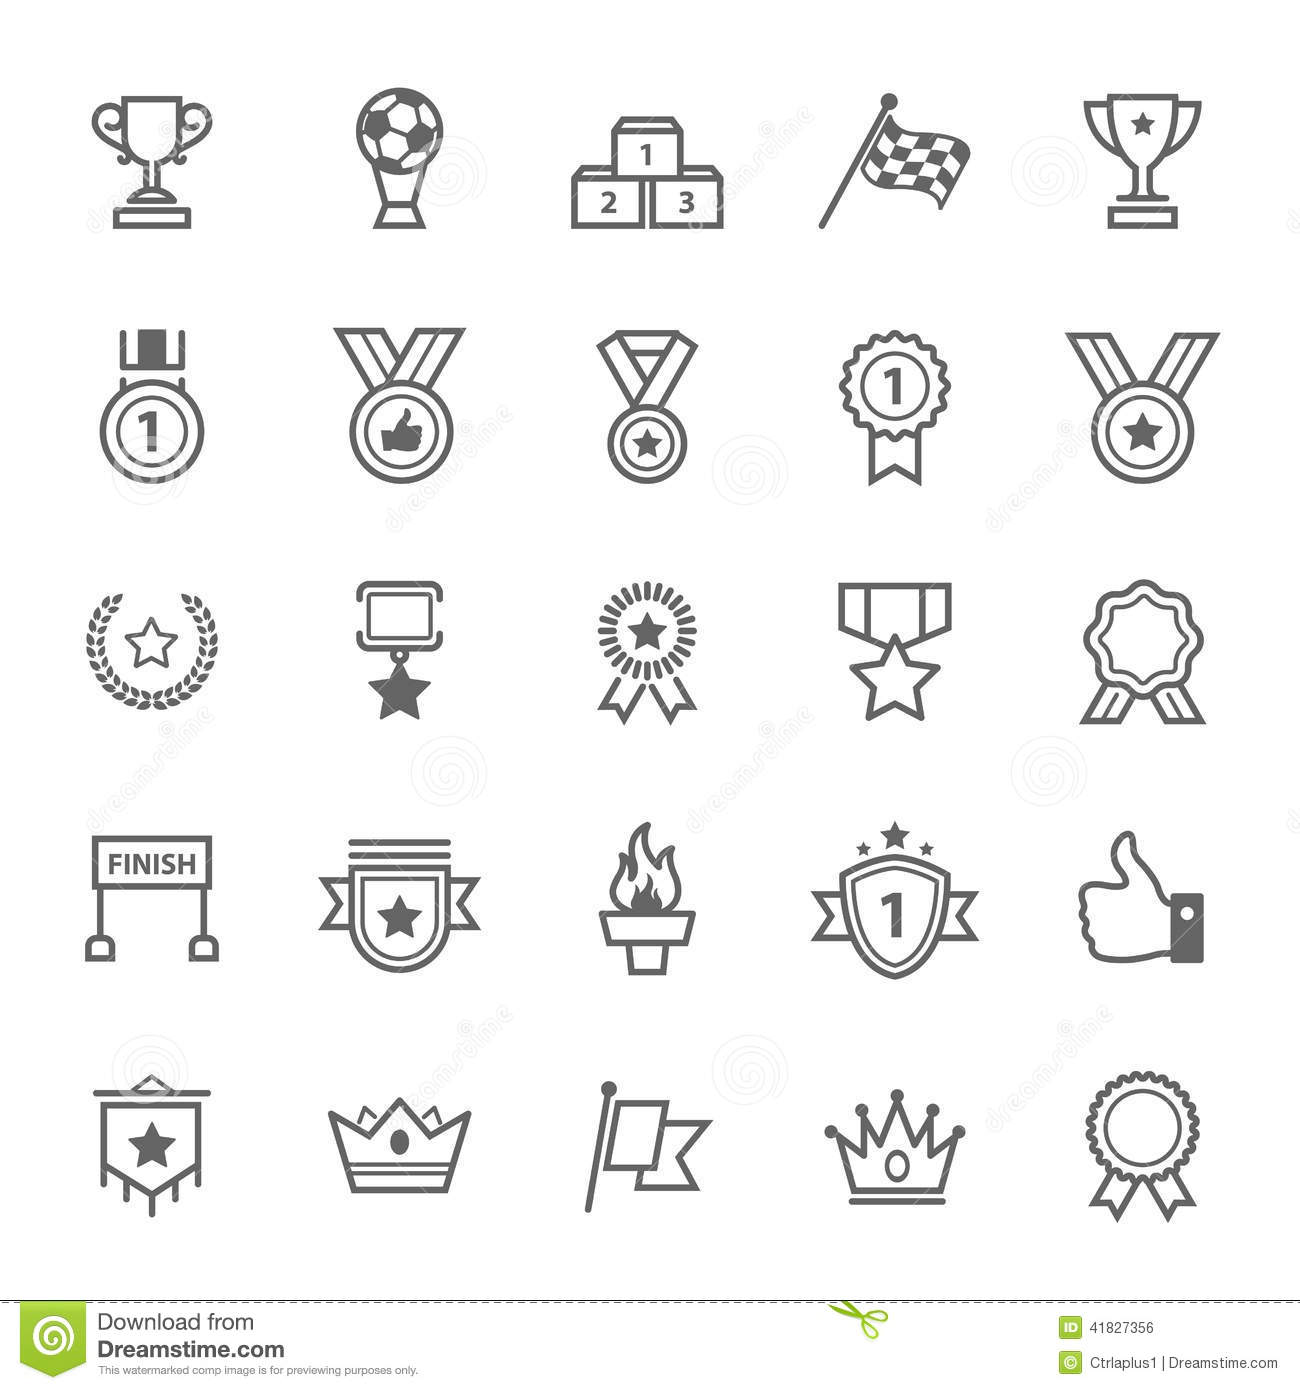 Set of Outline stroke Award and Trophy icon